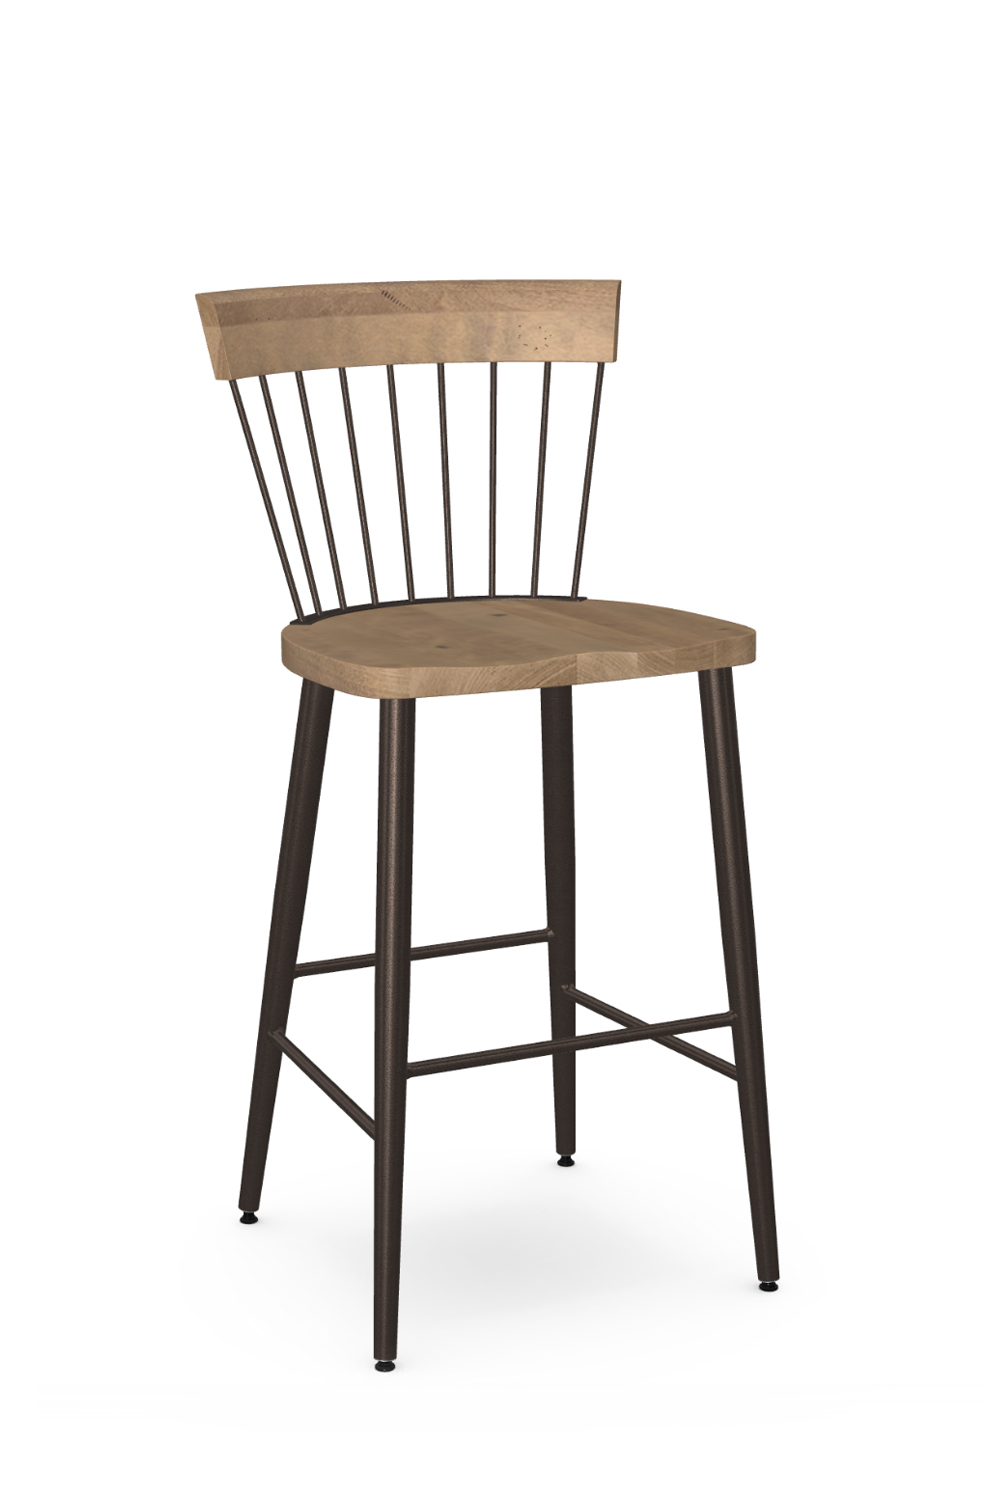 Picture of: Amisco S Angelina Spindle Back Bar Stool Barstool Comforts